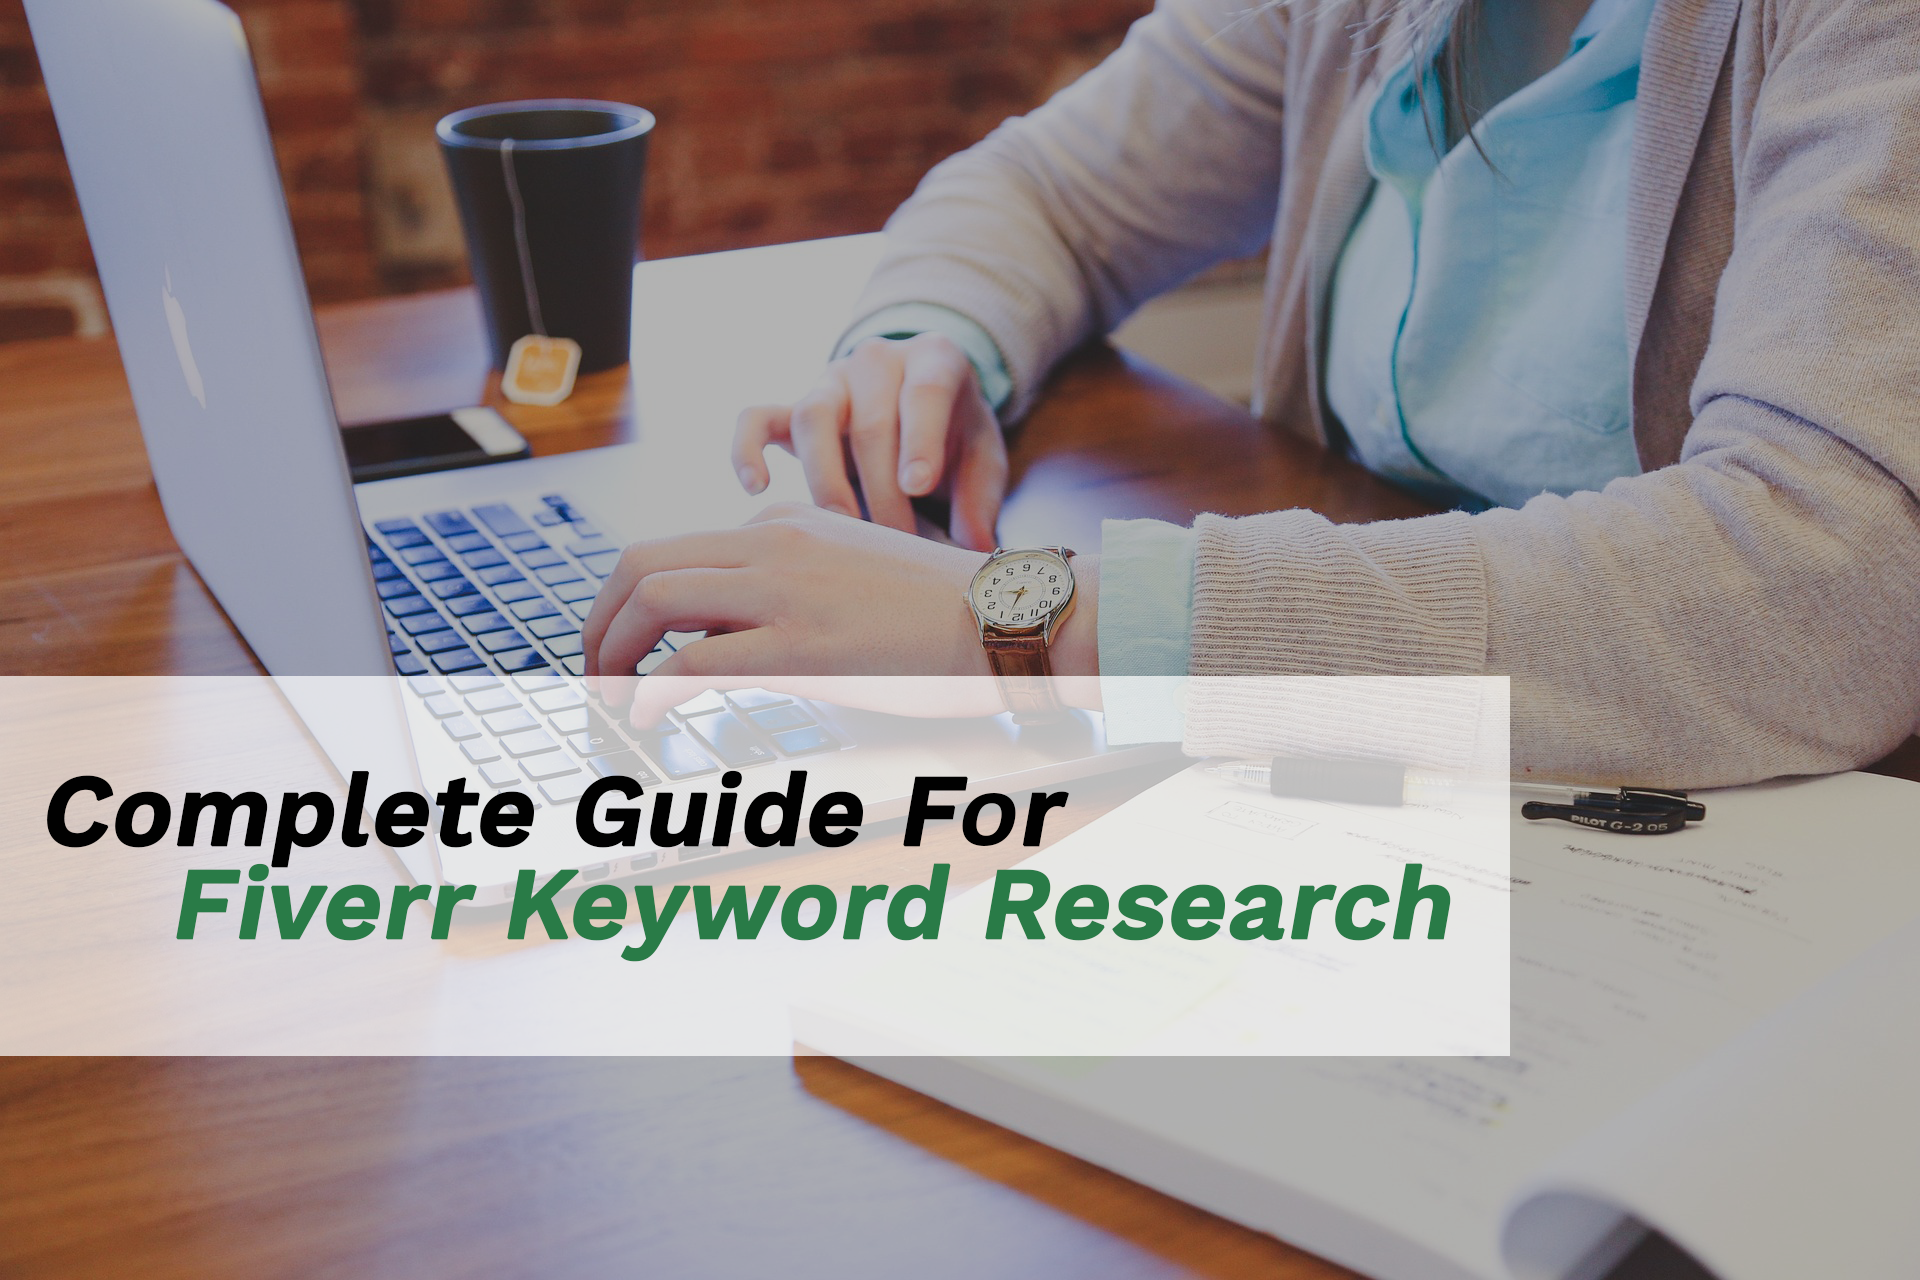 How to do Fiverr Keyword Research properly